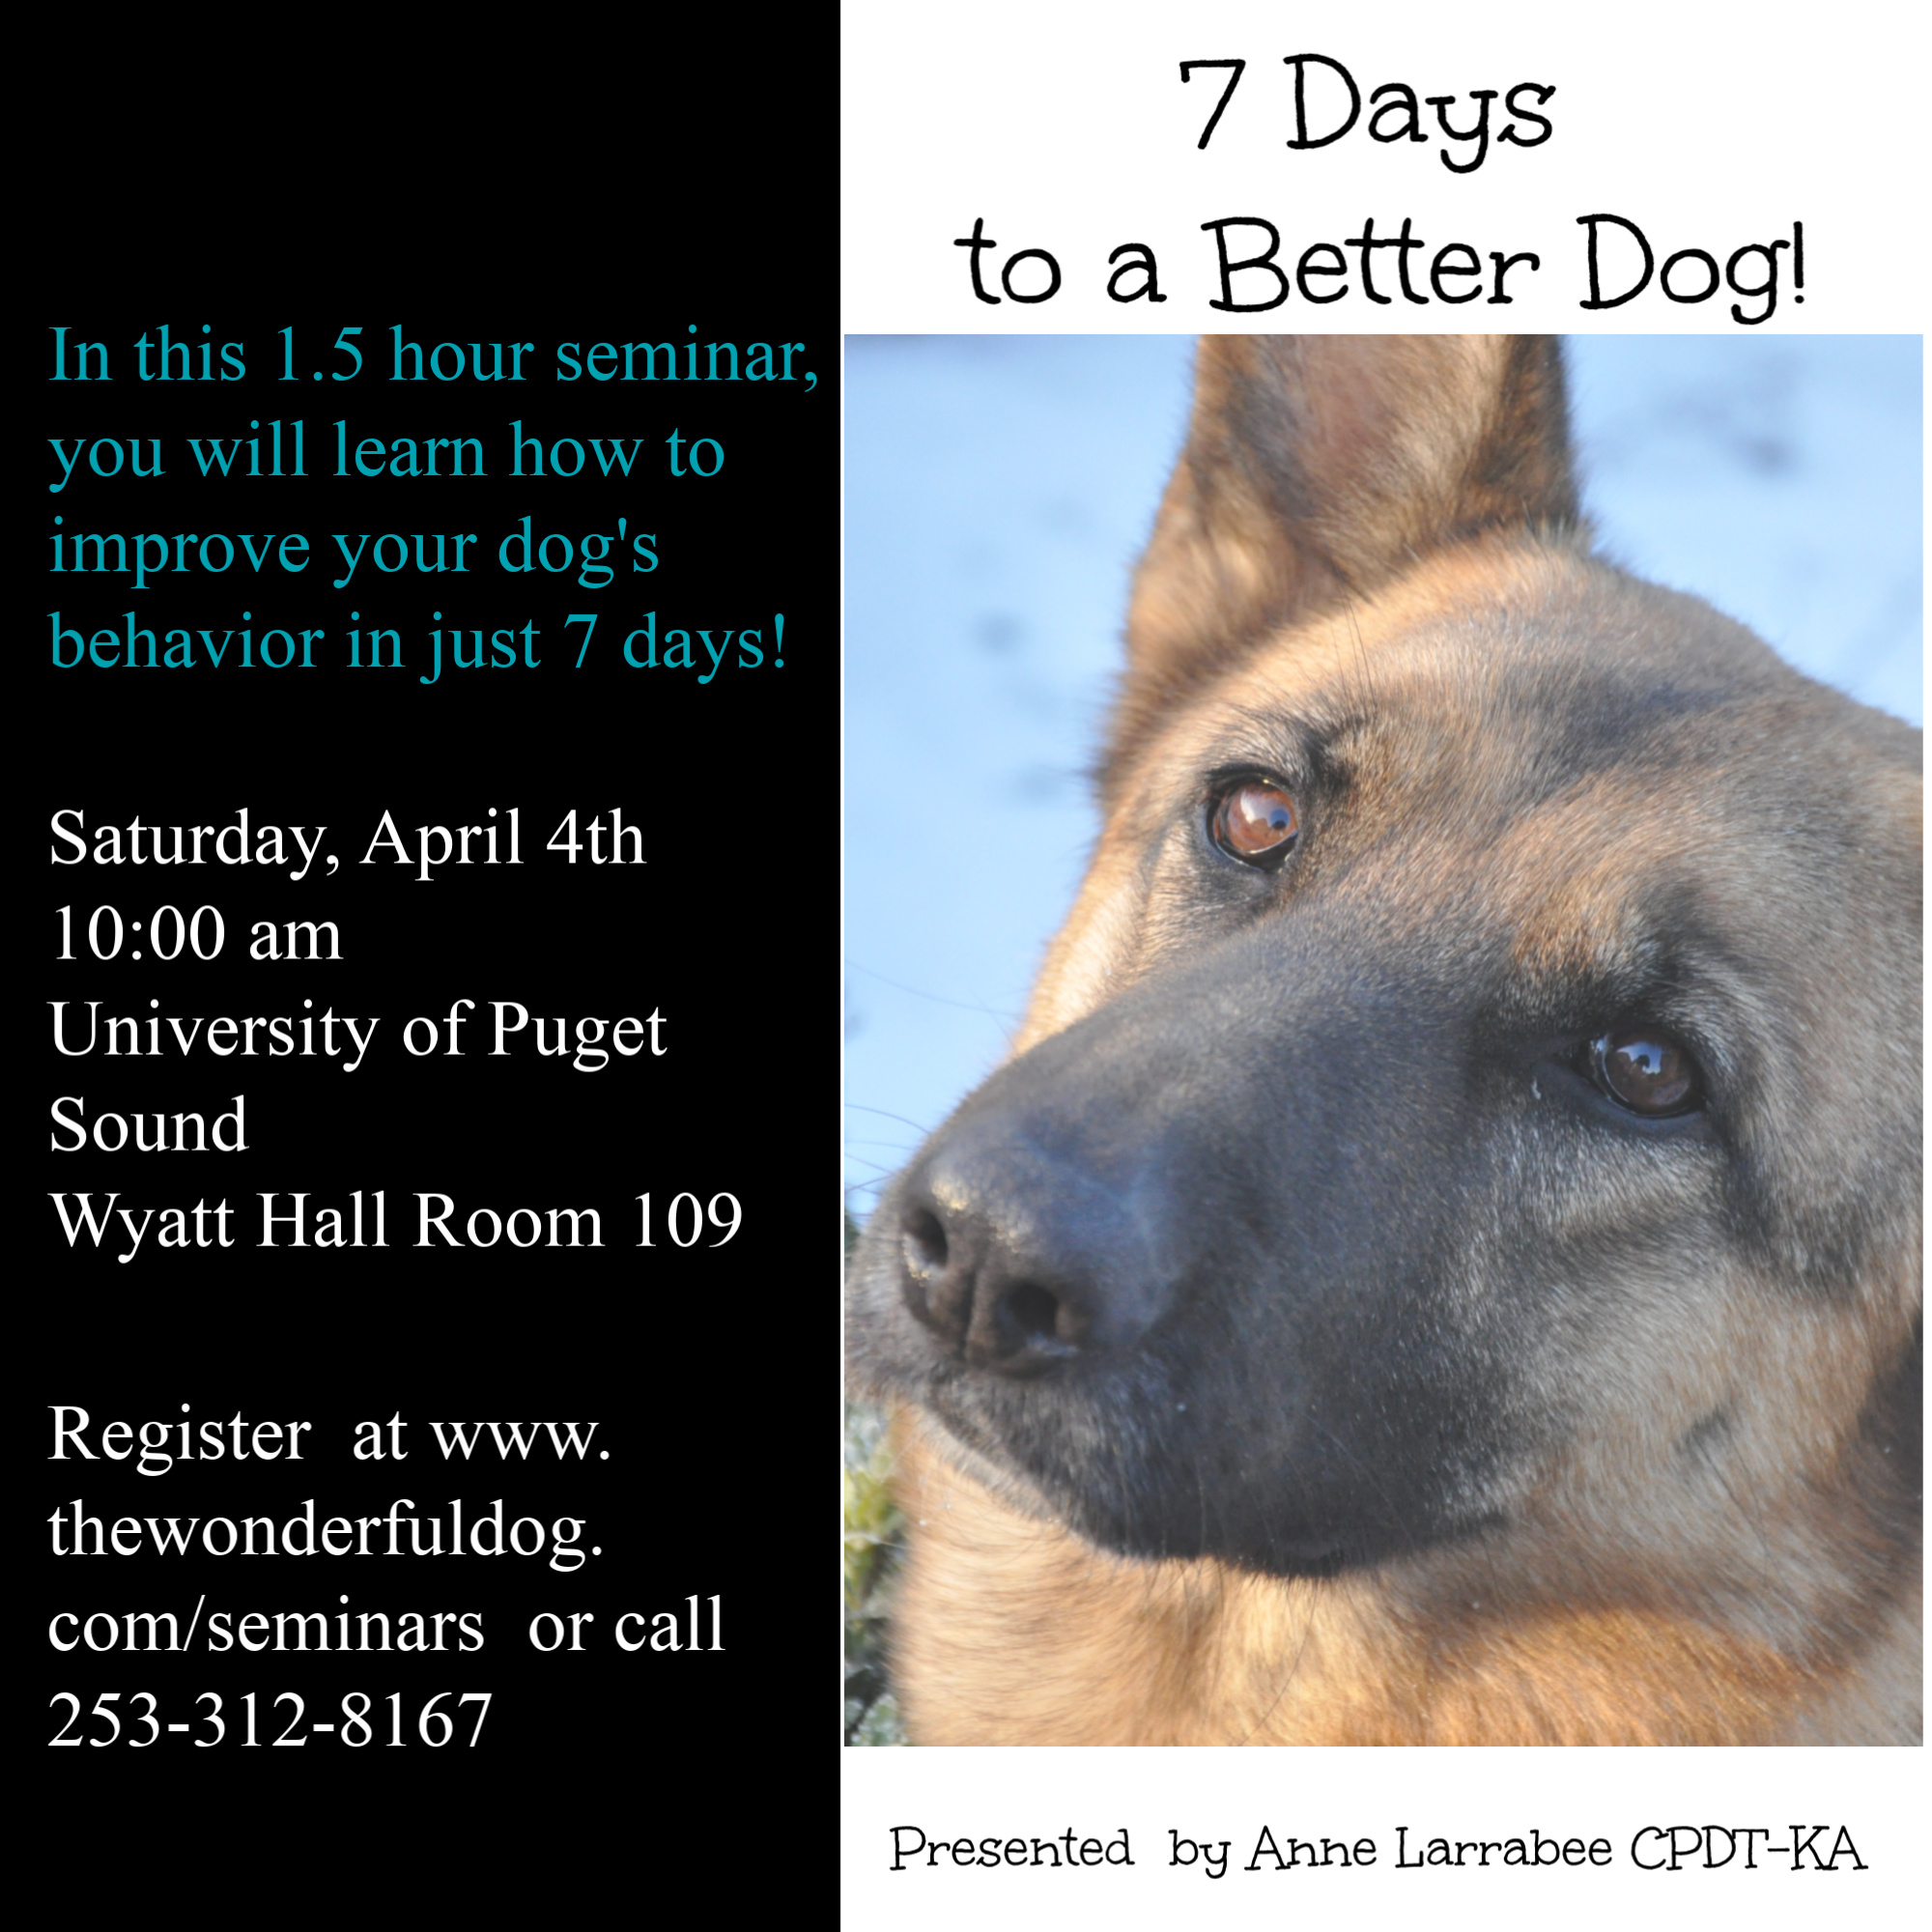 7 Days to a Better Dog